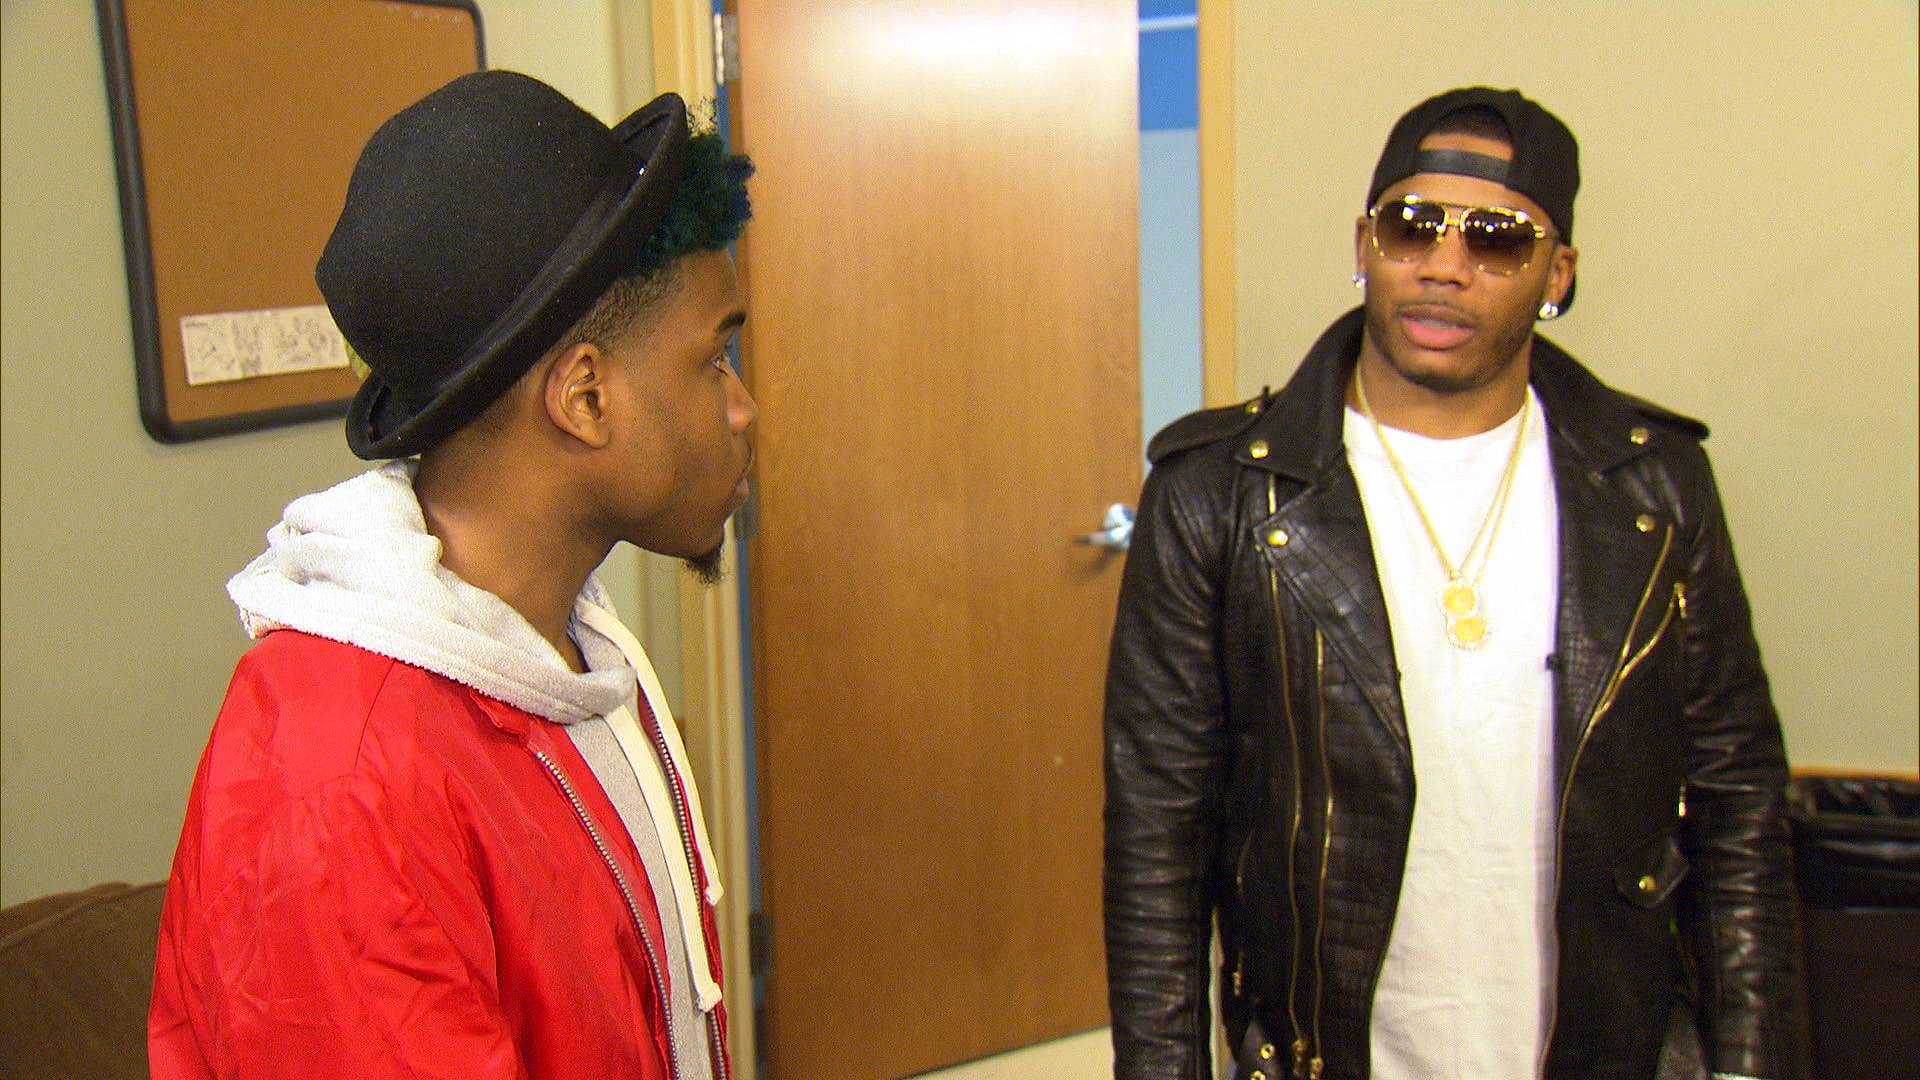 Big Leagues - Nelly gives Lil' Shawn and Shad of JGE Retro some encouragement backstage. (Photo: BET)